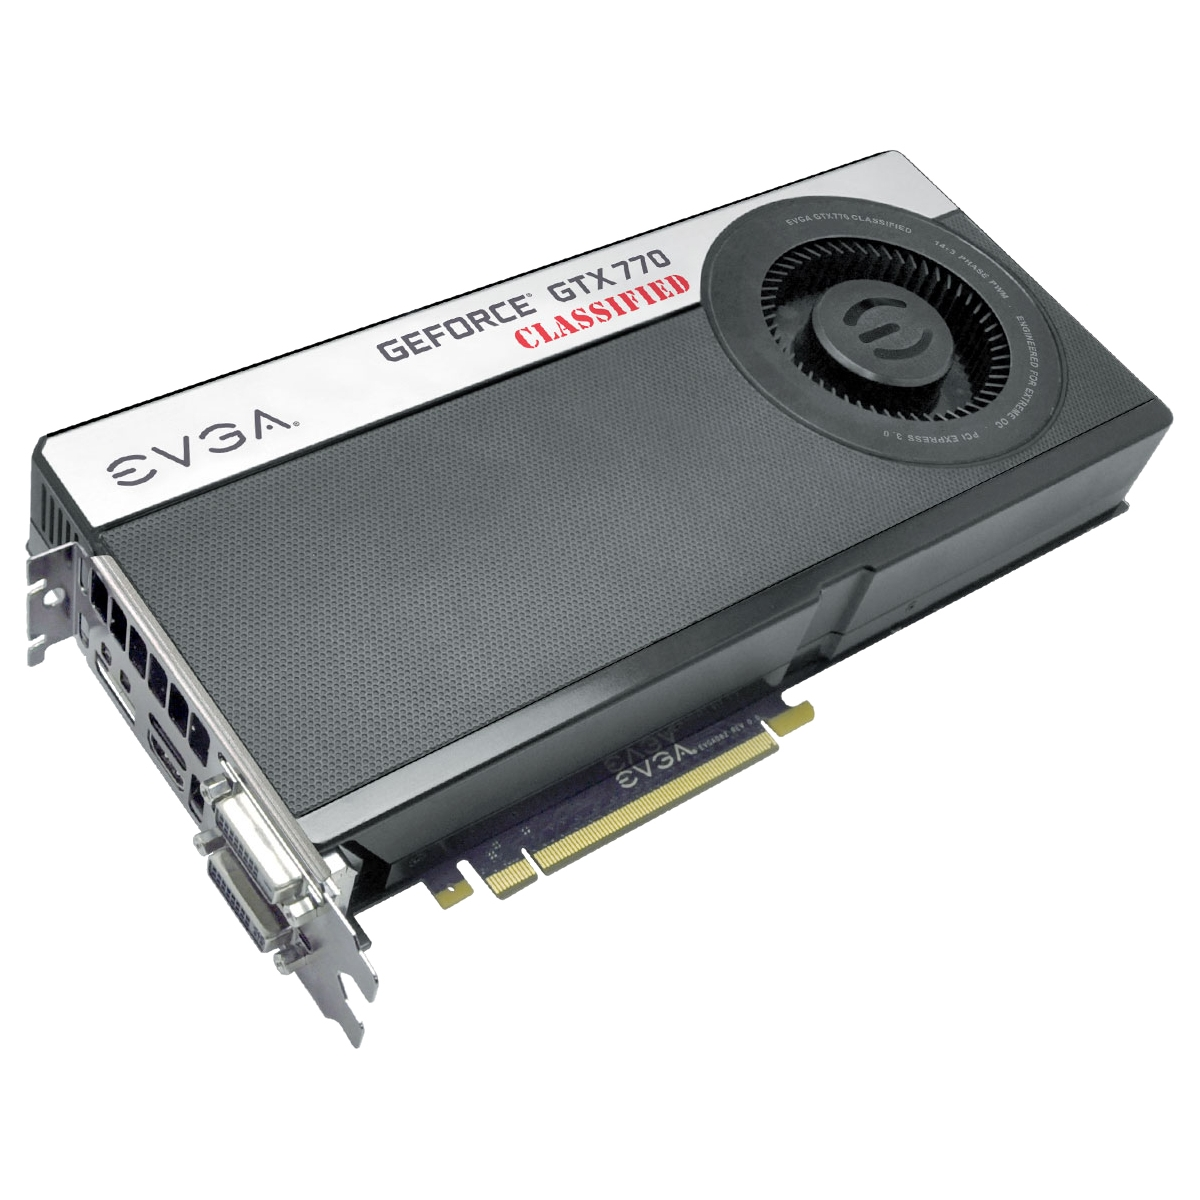 GeForce GTX 770 Graphic Card - 1046 MHz Core - 4 GB GDDR5 SDRAM - PCI Express 3.0 x16 - 7010 MHz Memory Clock - SLI - Fan Cooler - DirectX 11.1 OpenGL 4.3 OpenCL 1.2 DirectCompute 5.0 - HDMI - DisplayPort - DVI